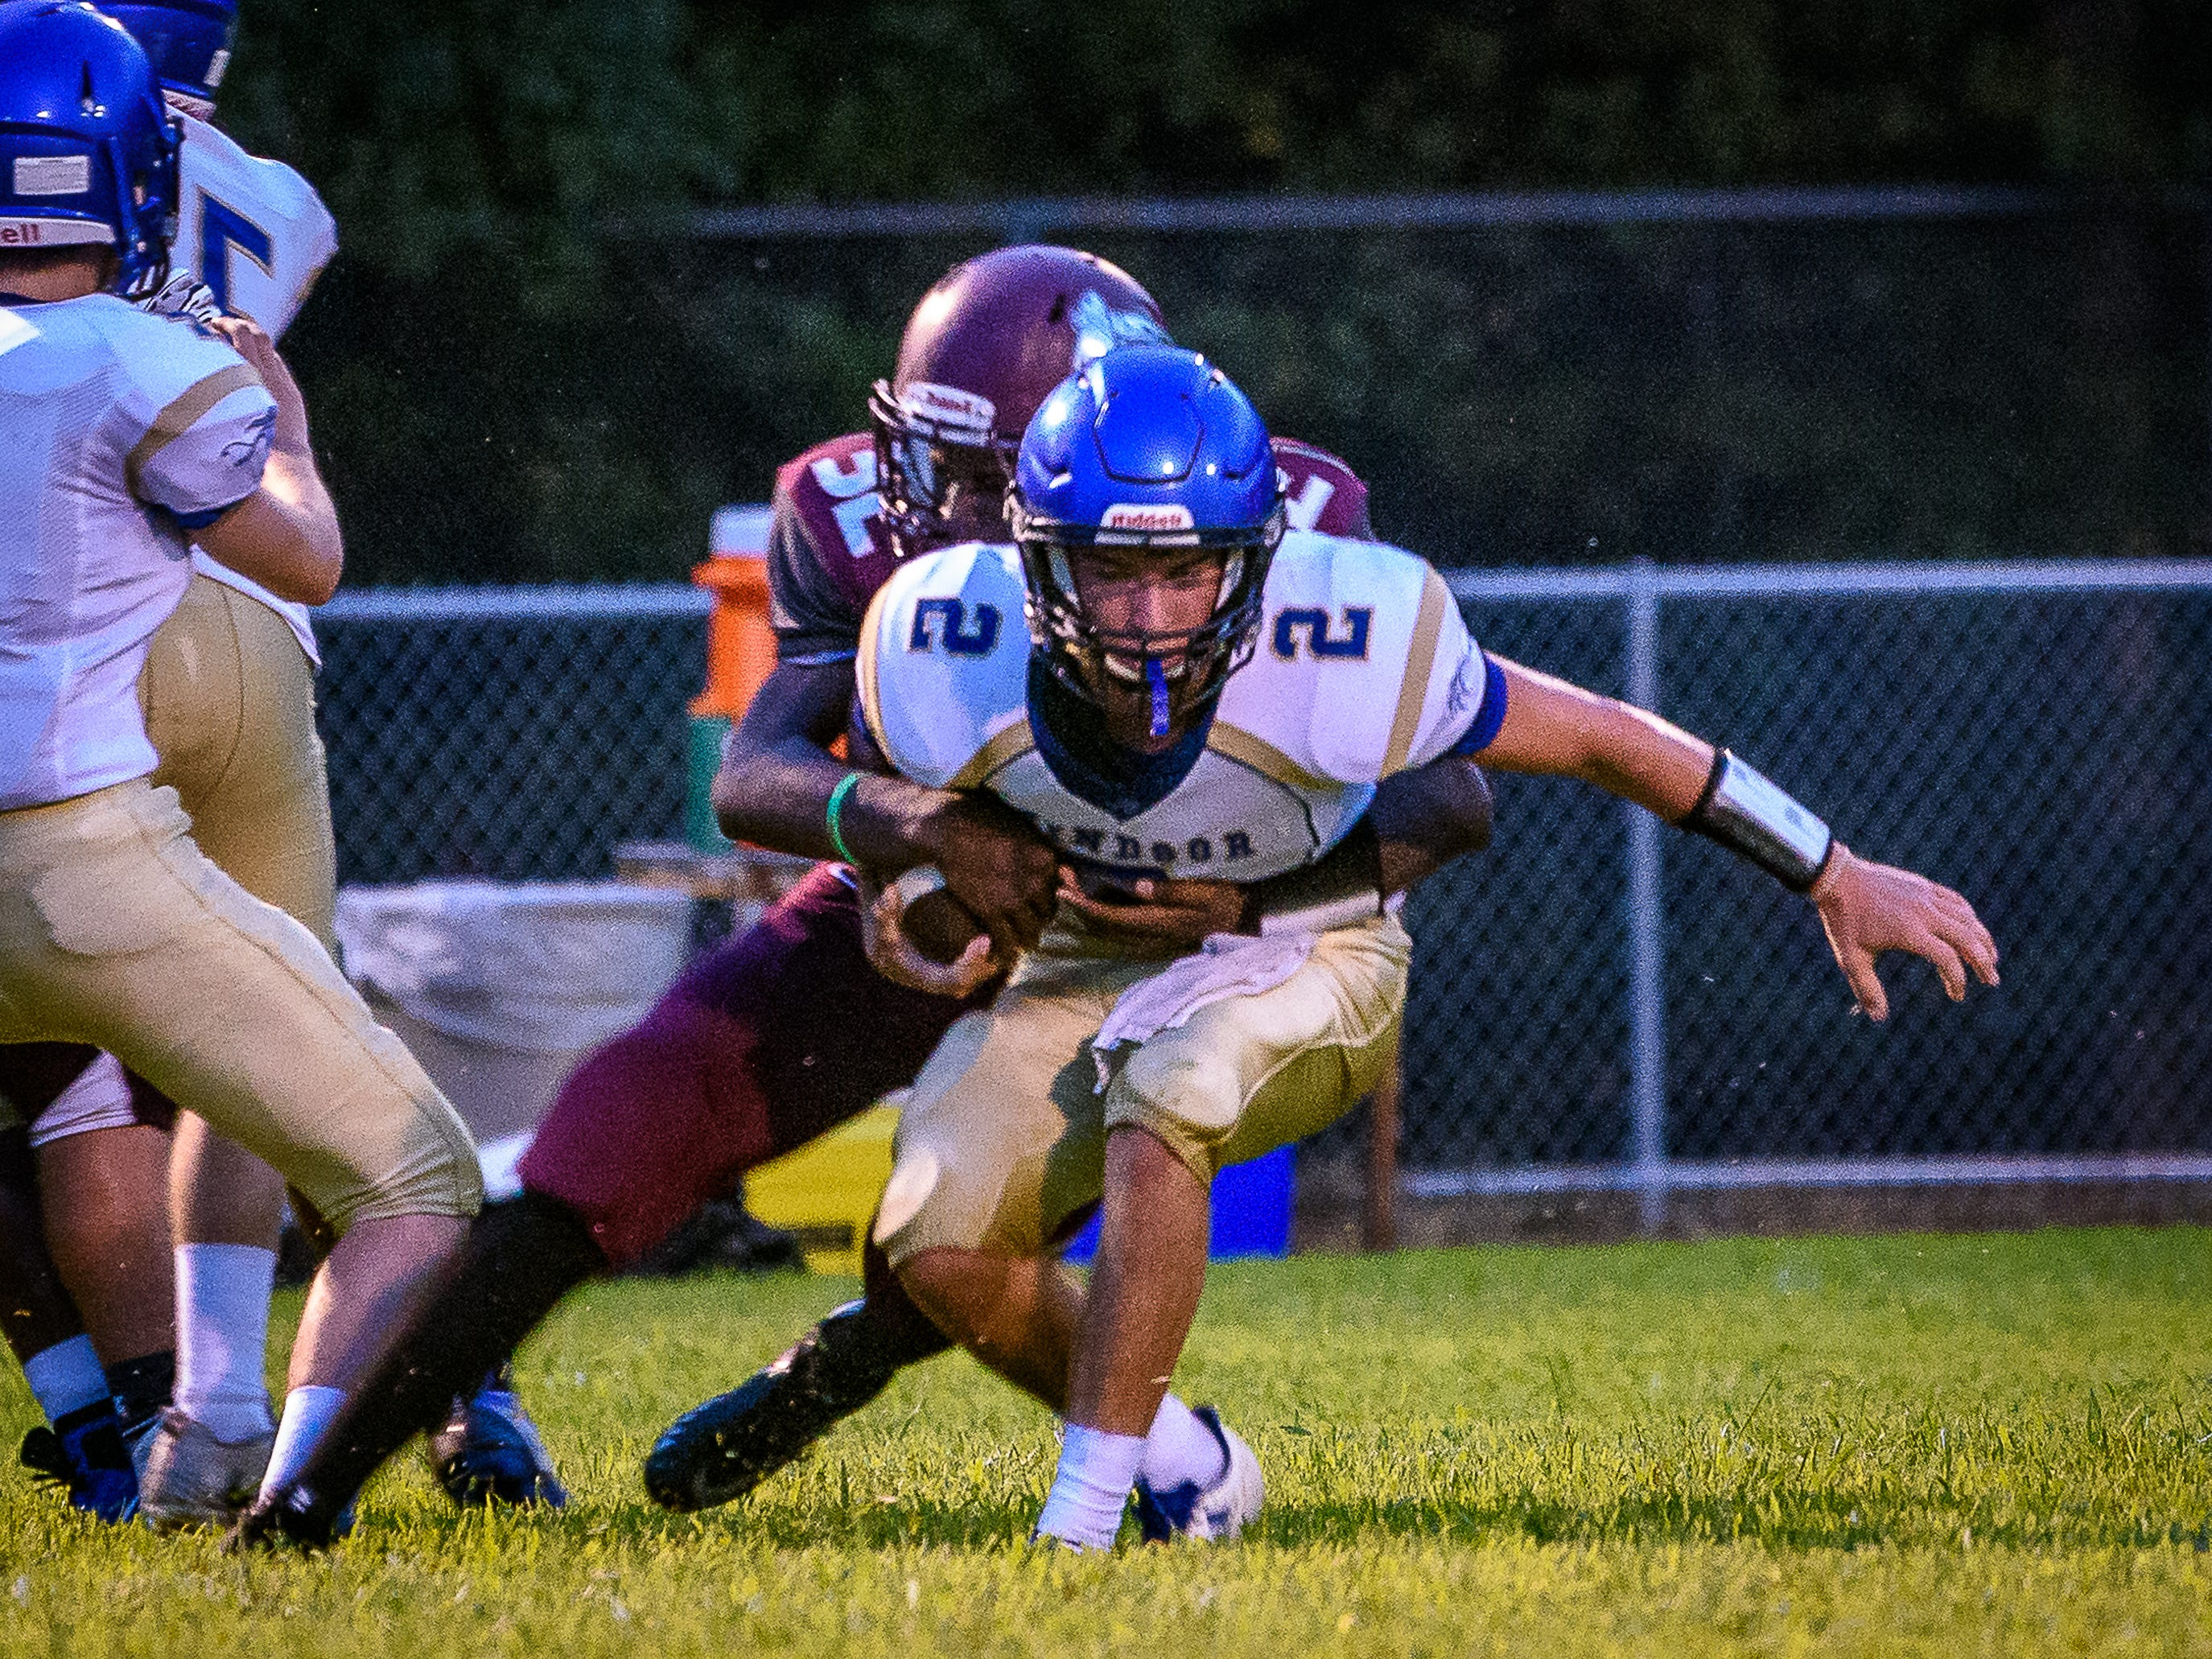 Windsor's Nicholas Donovan gets tackled by Nandua's Adrian Sample.